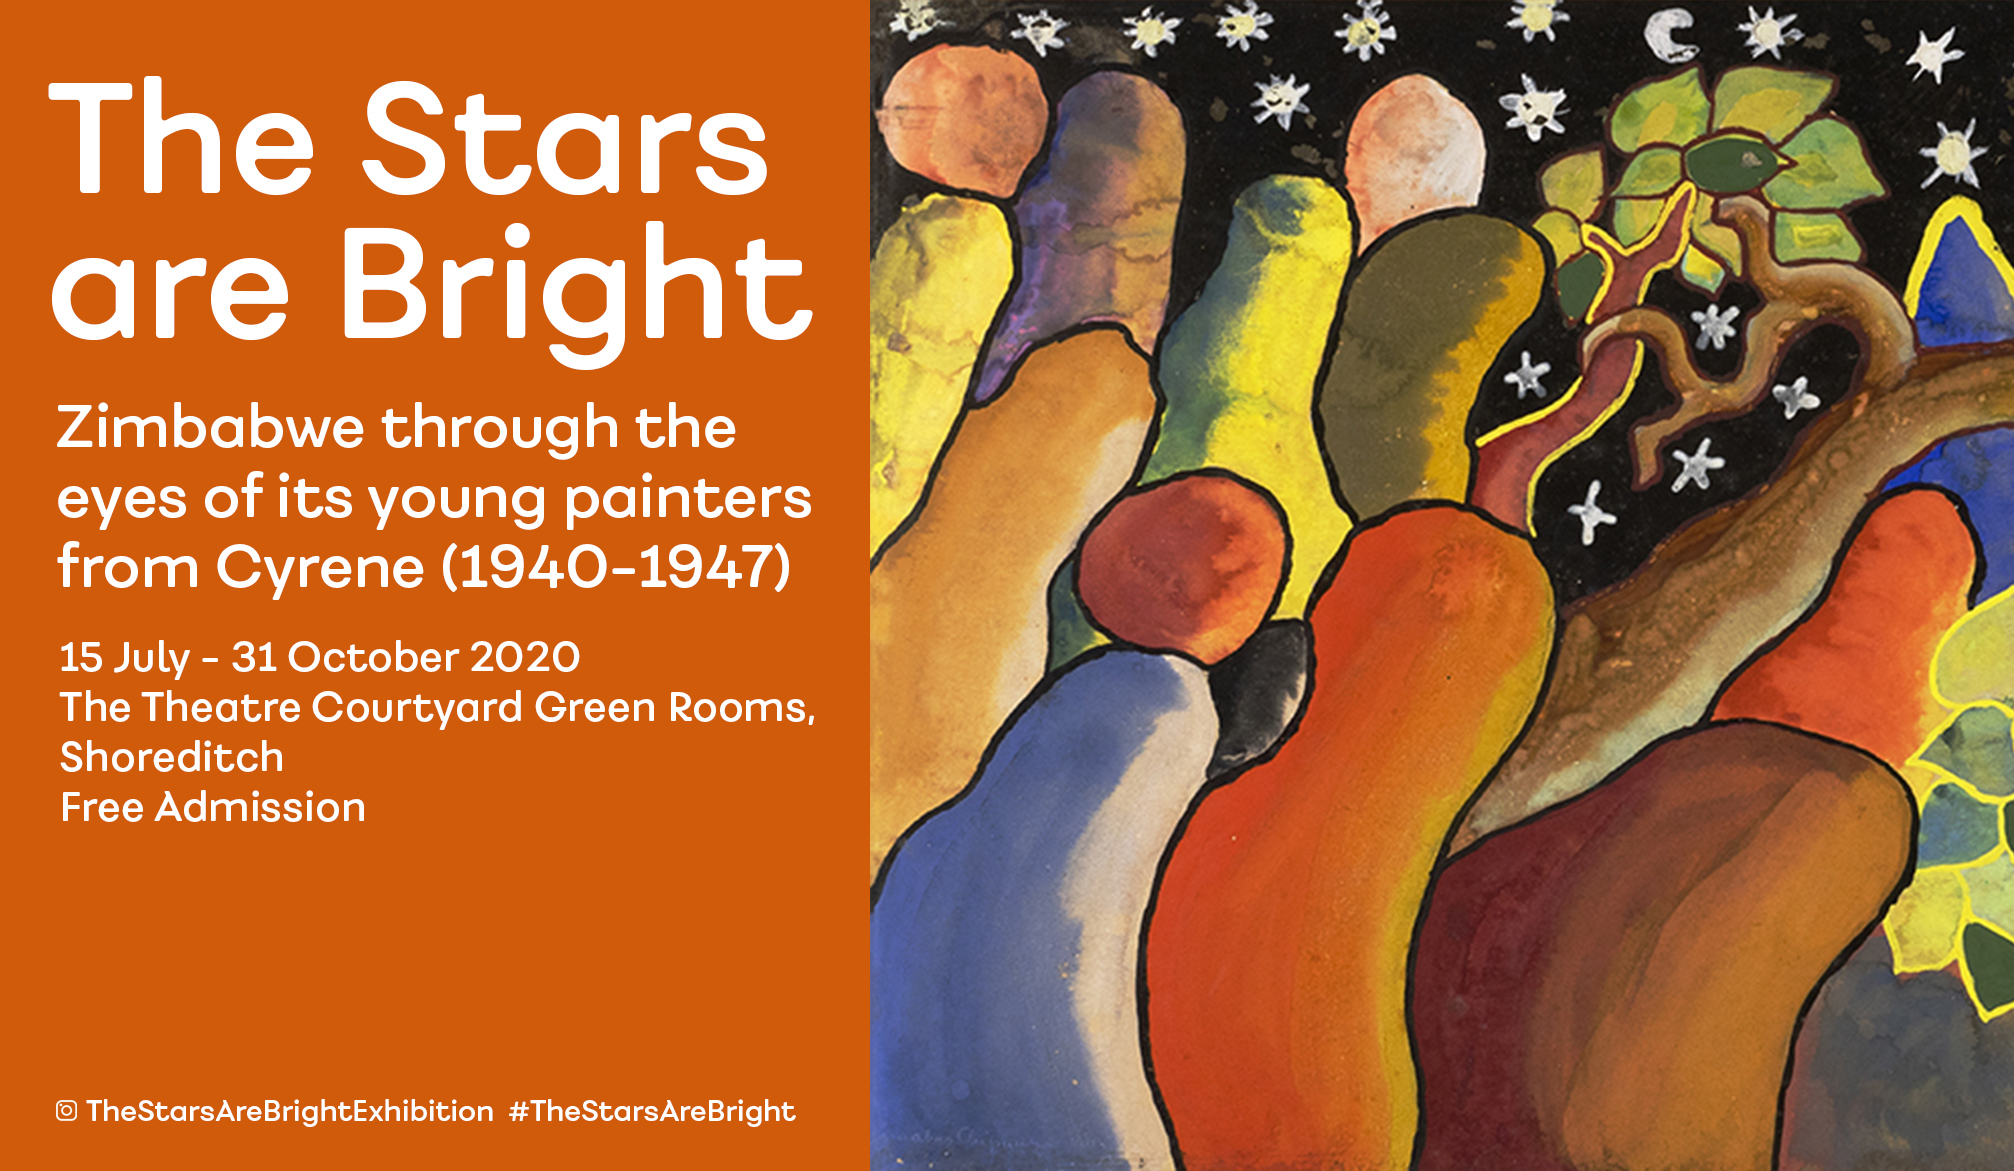 The Stars are Bright: Zimbabwe through the eyes of its young painters from Cyrene (1940-1947), 15 July – 30 September 2020, The Theatre Courtyard Green Rooms